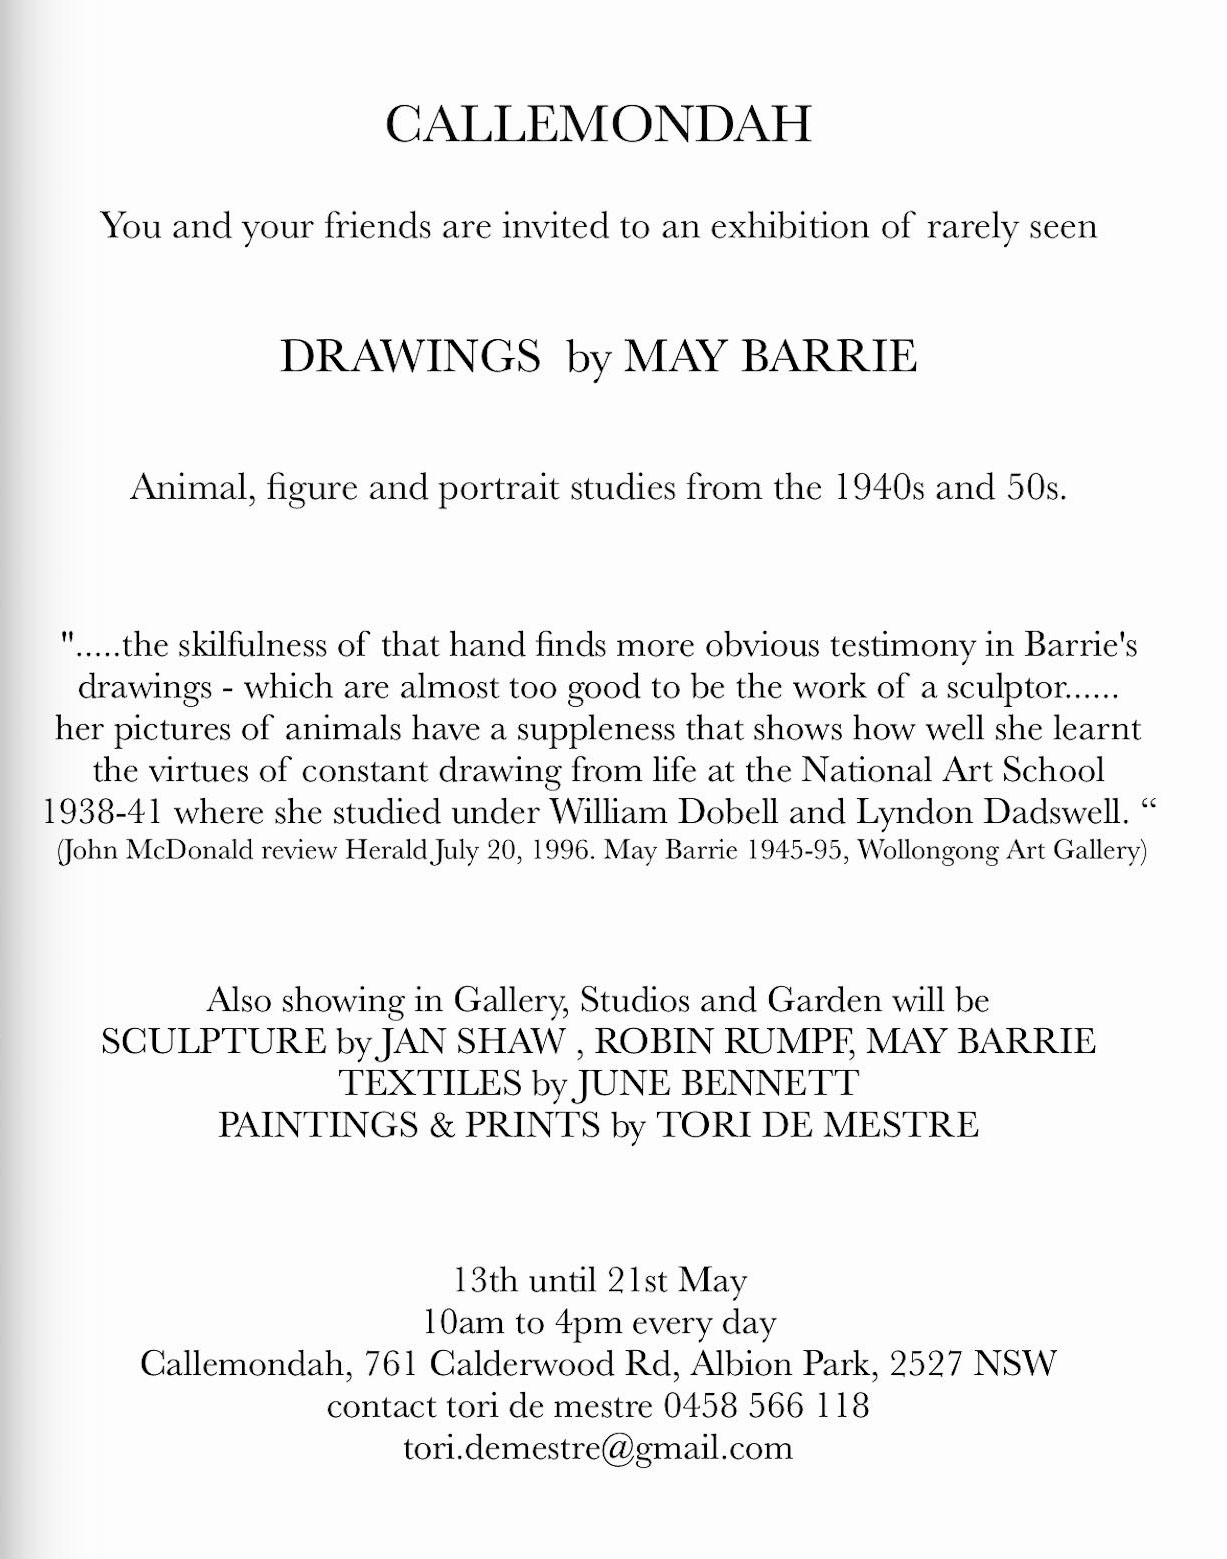 Drawings by May Barrie, Exhibition at Callemondah Invitation